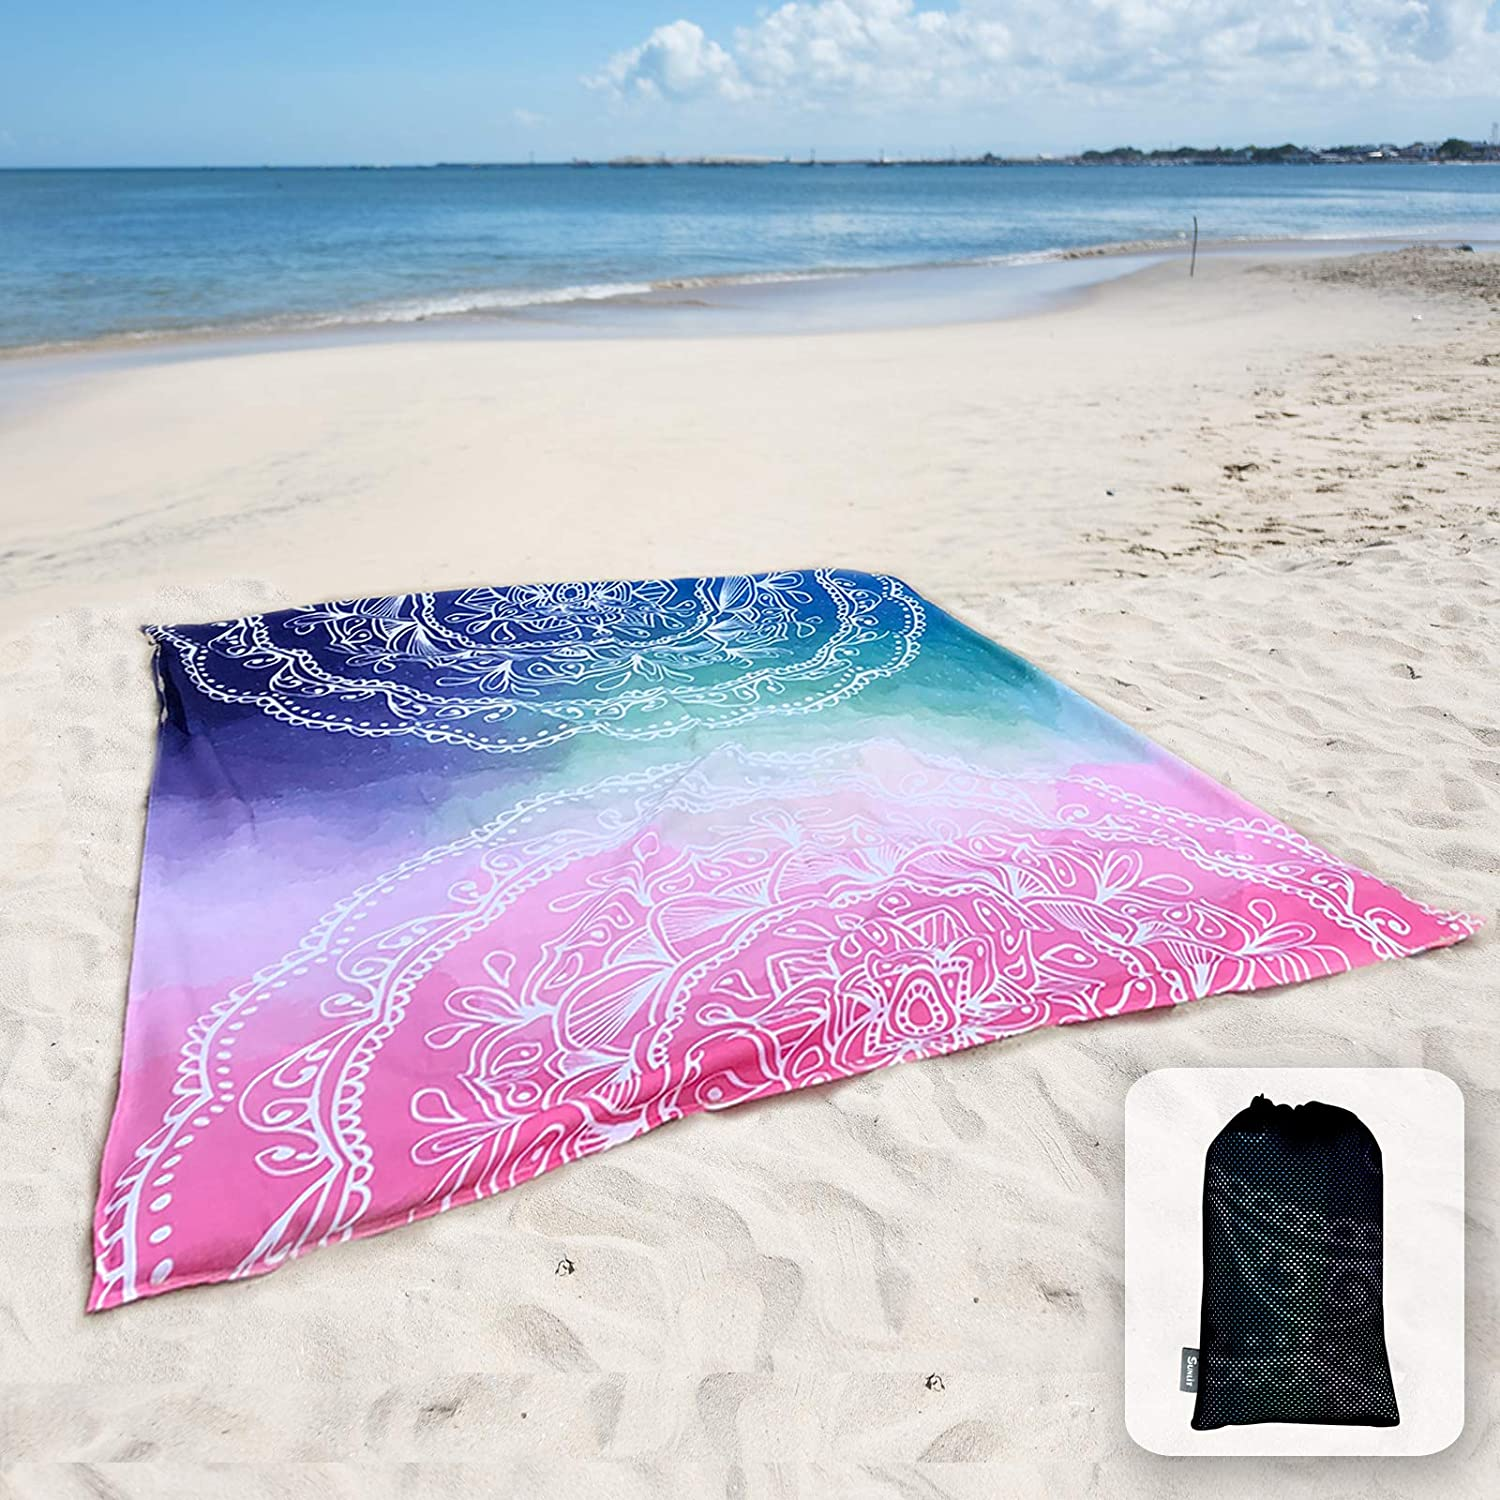 Sunlit Silky Soft Sand Proof Beach Blanket Sand Proof Mat with Corner Pockets and Mesh Bag for Beach Party Travel Mandala Camping and Outdoor Music Festival